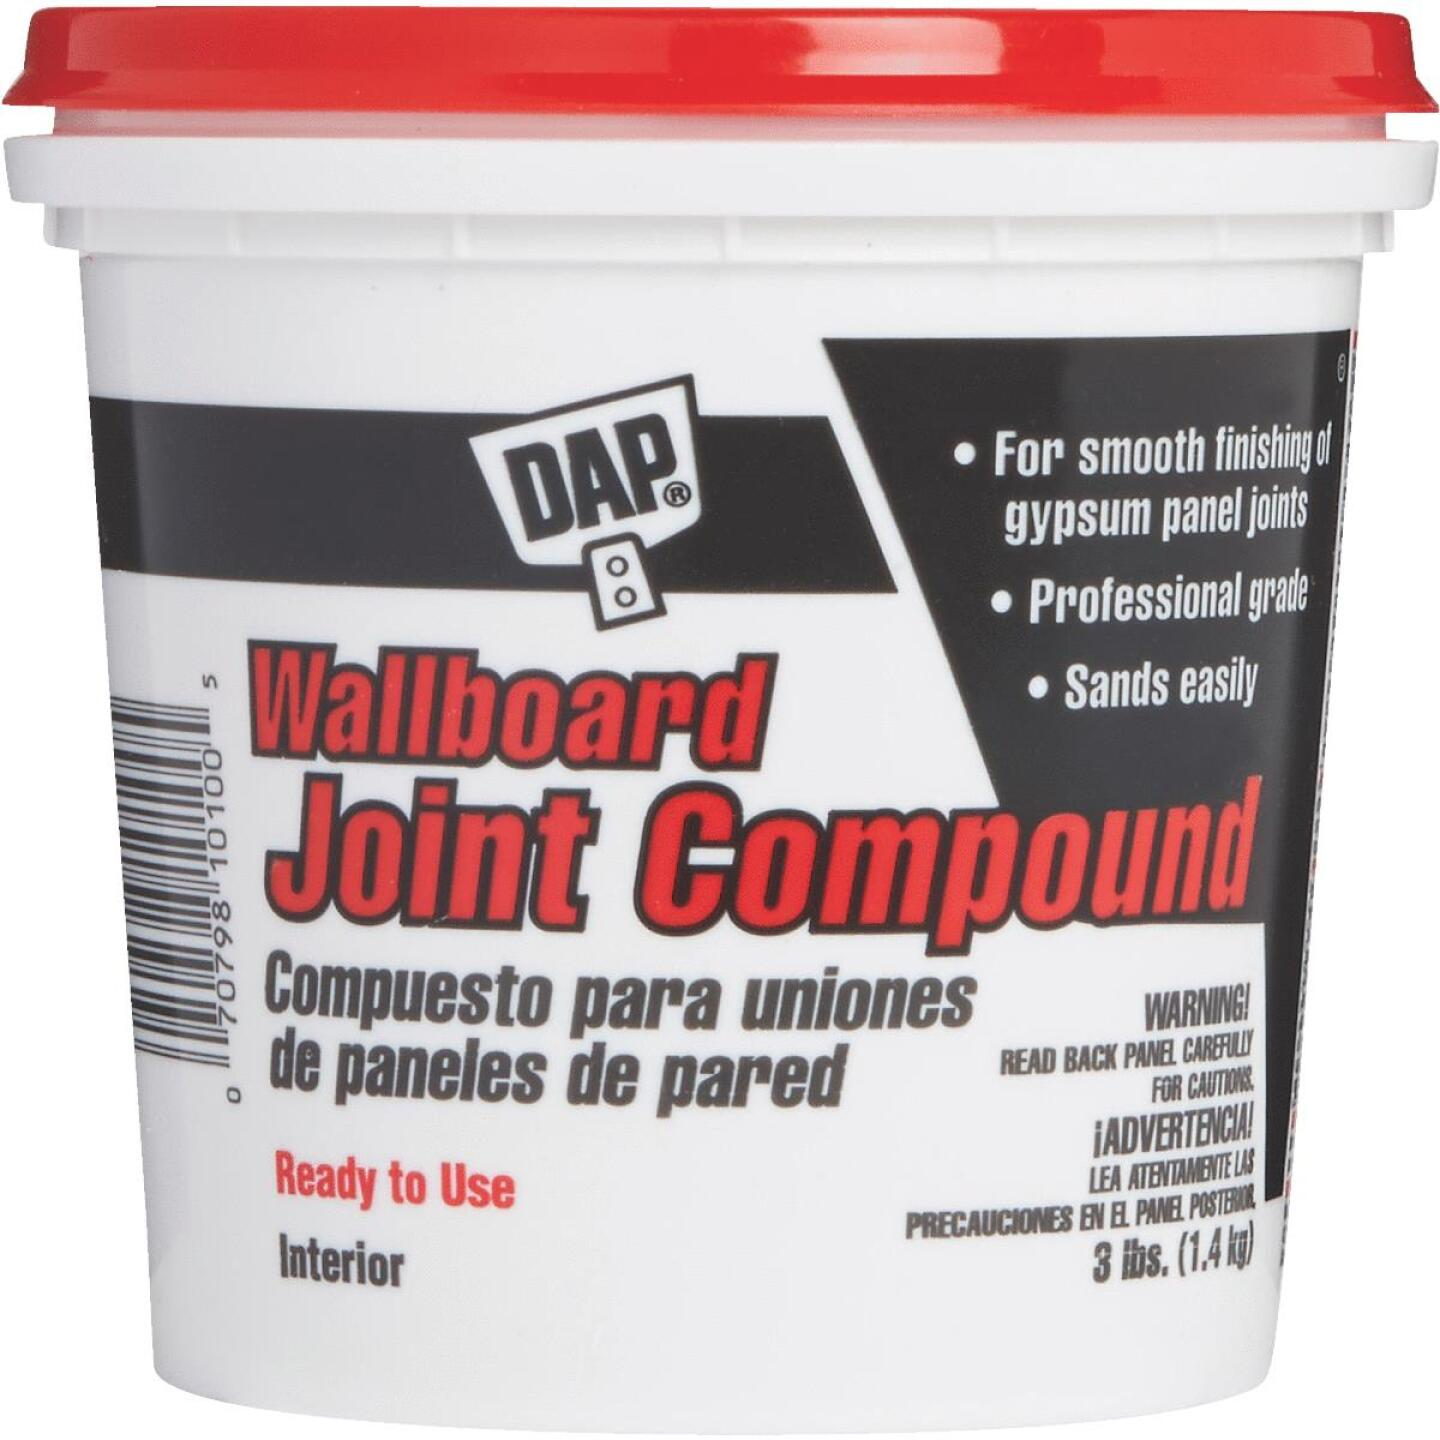 Dap 3 Lb. Pre-Mixed Latex Wallboard Drywall Joint Compound Image 1